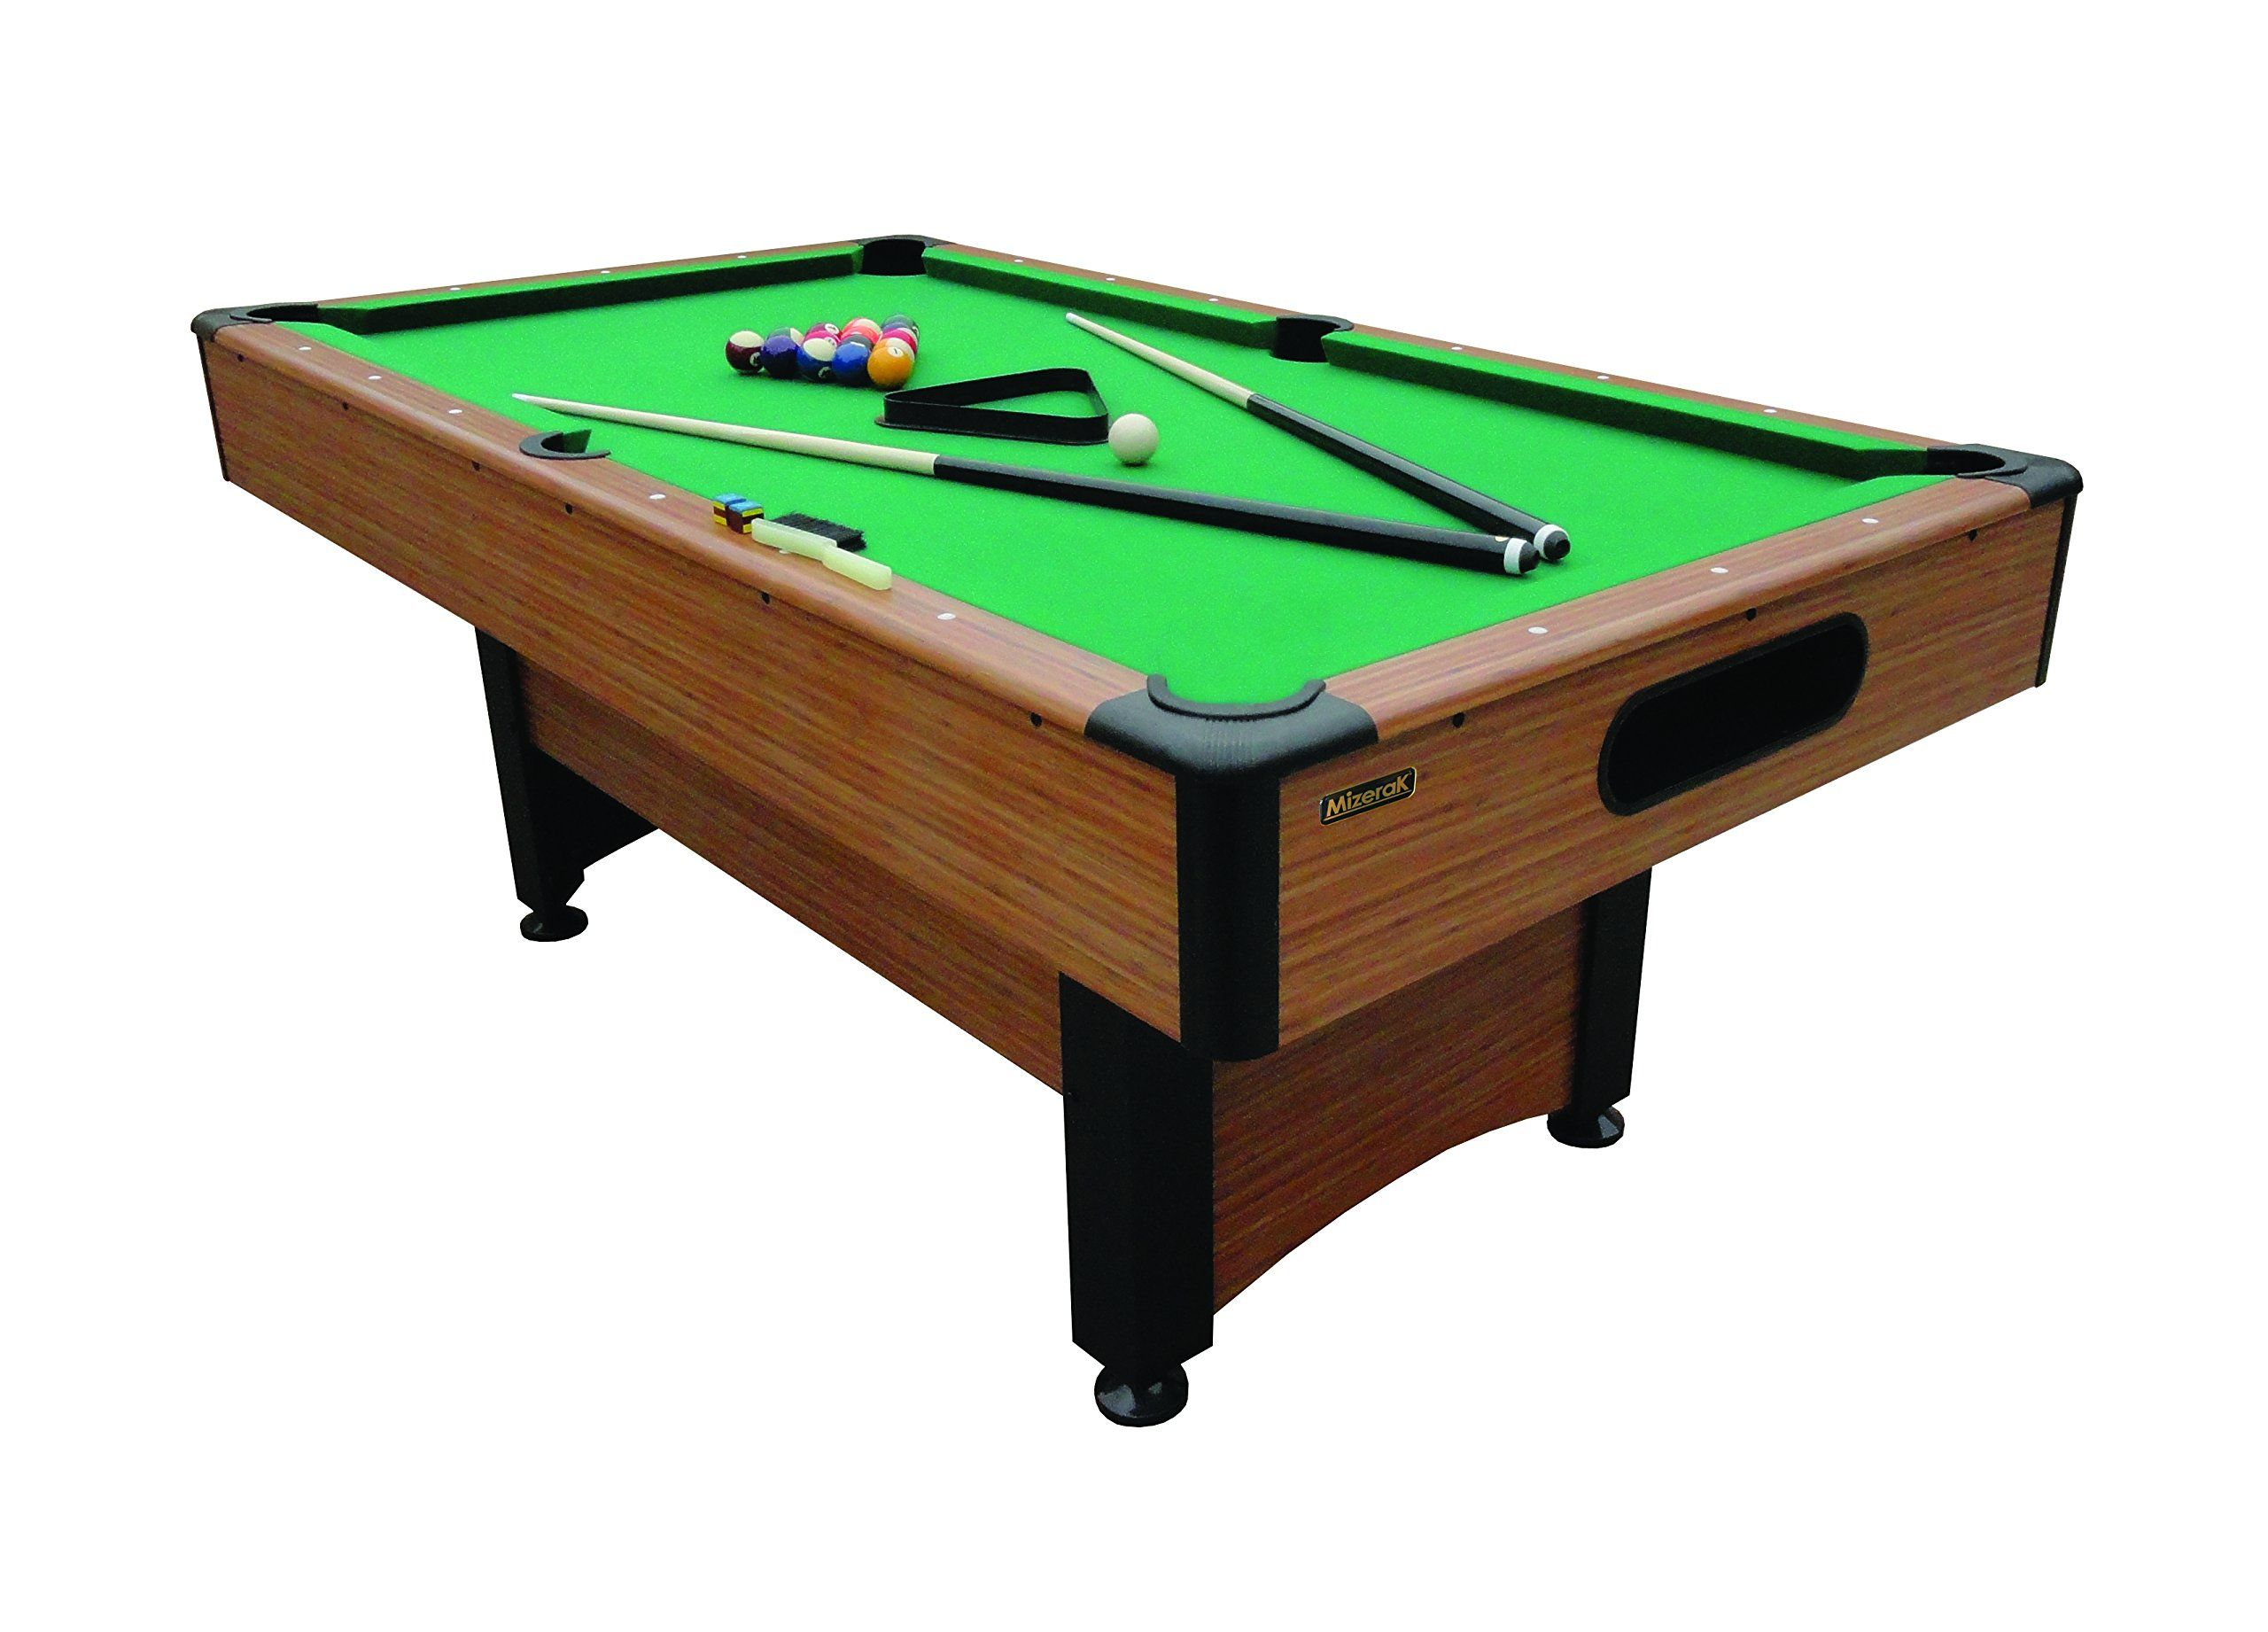 Most Popular Pool Table Brands Pool And Billiard Tables - Good pool table brands